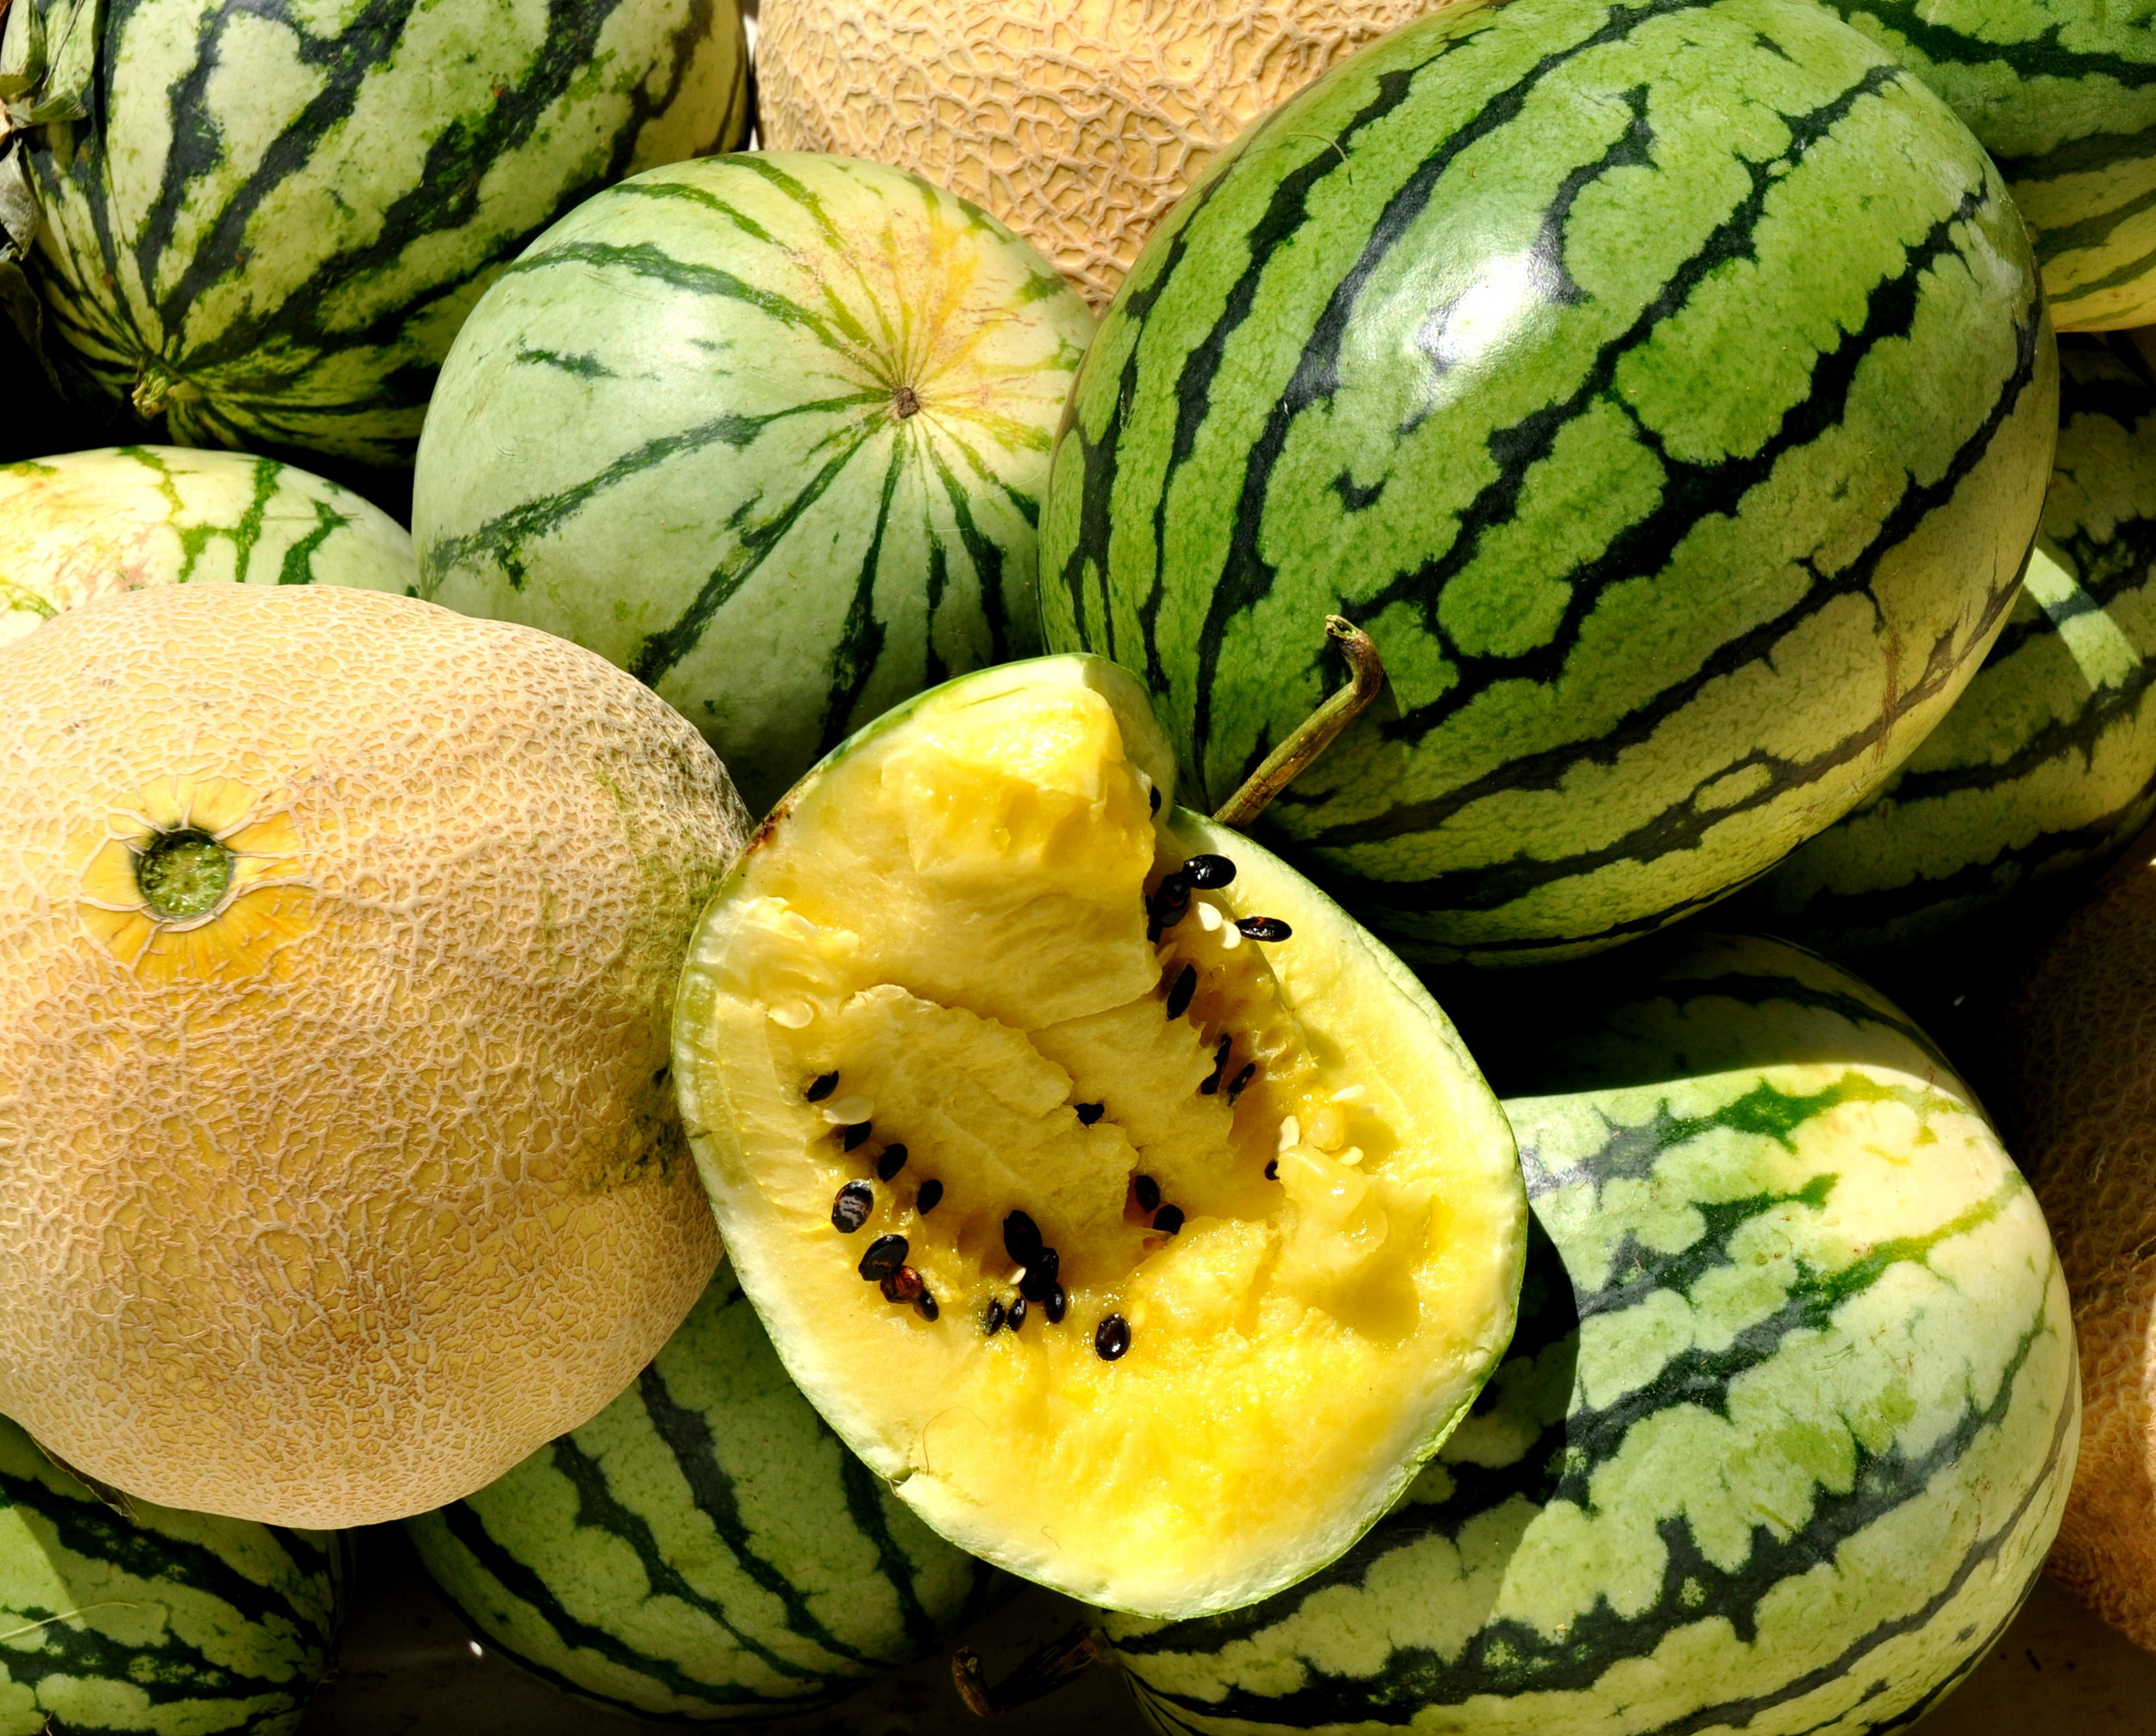 Cantaloupe melons and Yellow Doll watermelons from Lyall Farms. Photo copyright 2013 by Zachary D. Lyons.